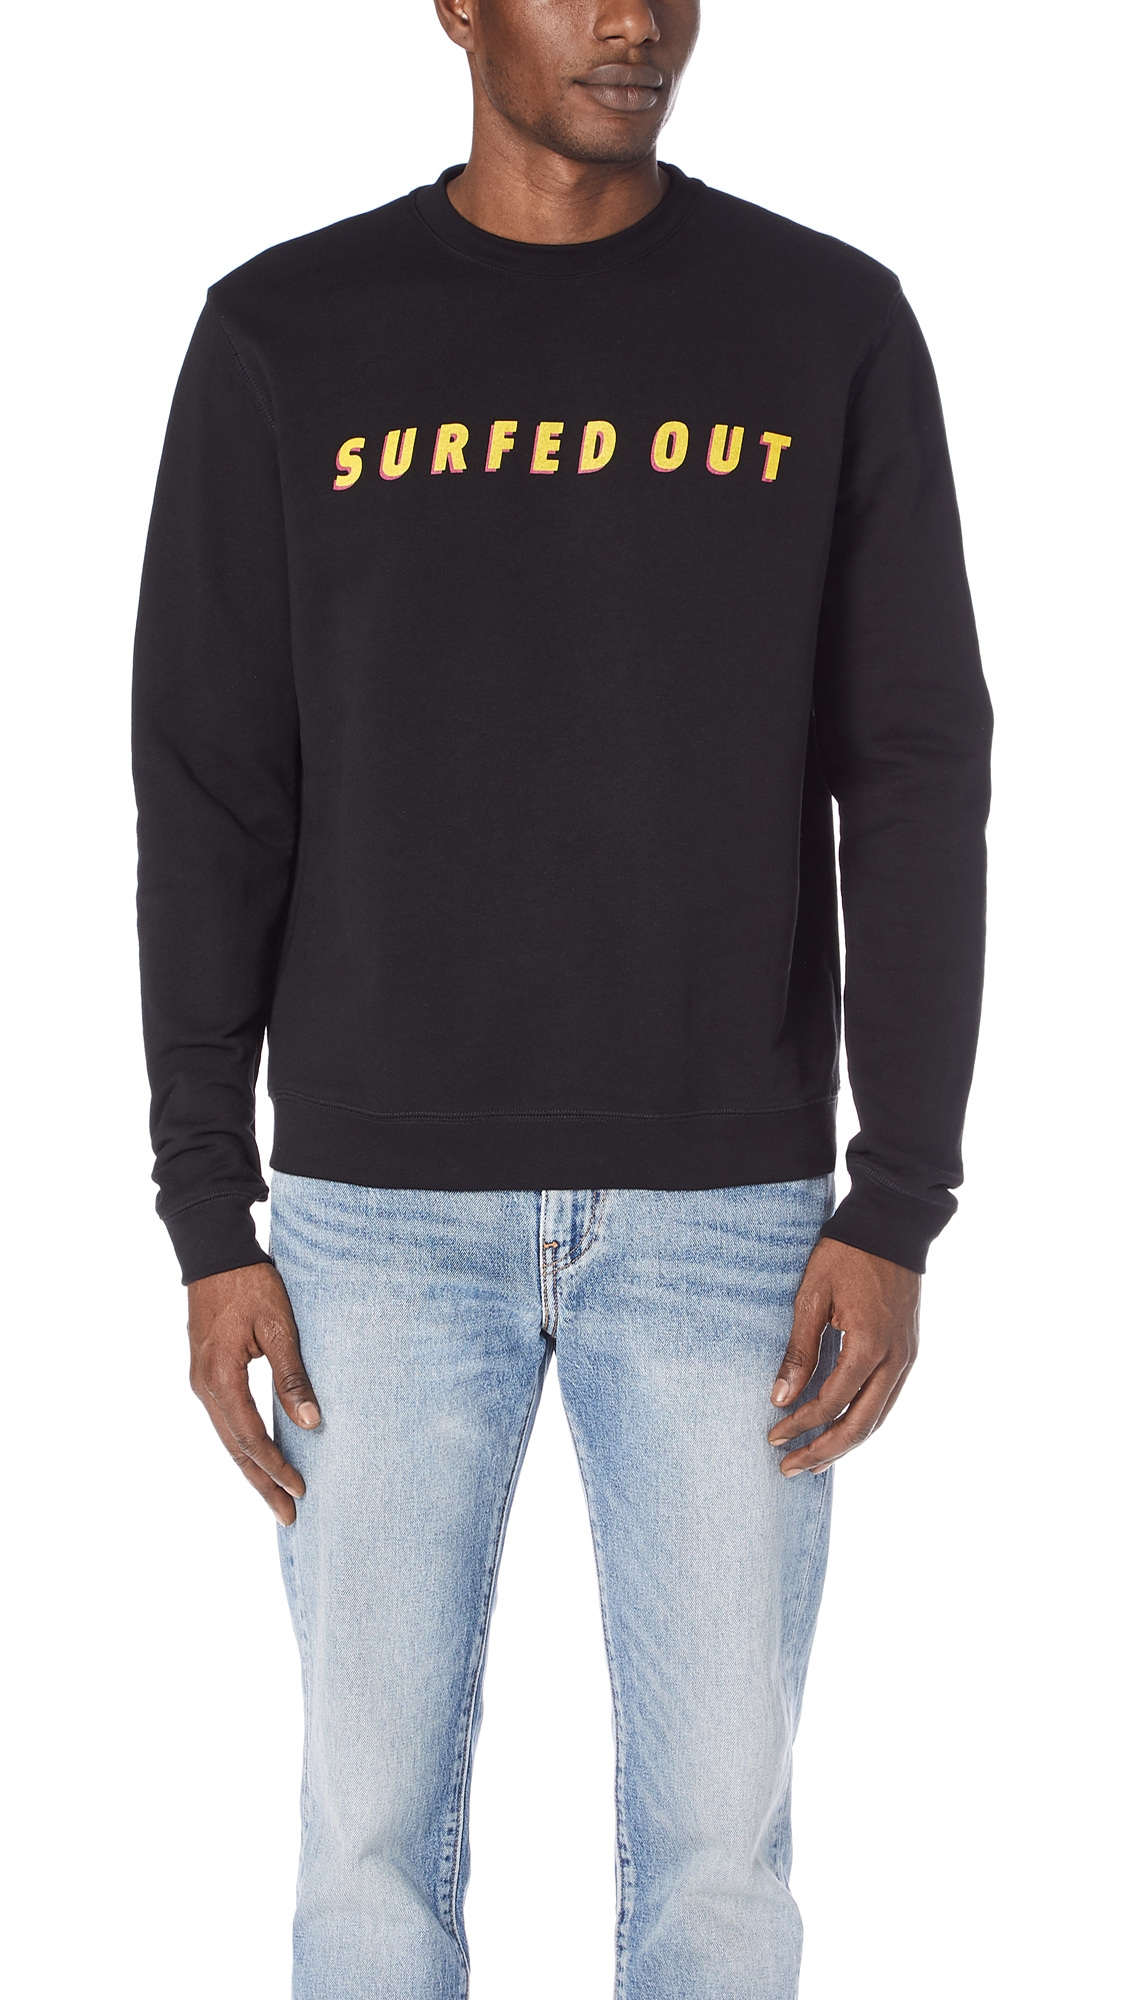 THE SILTED COMPANY SURFED OUT SWEATSHIRT